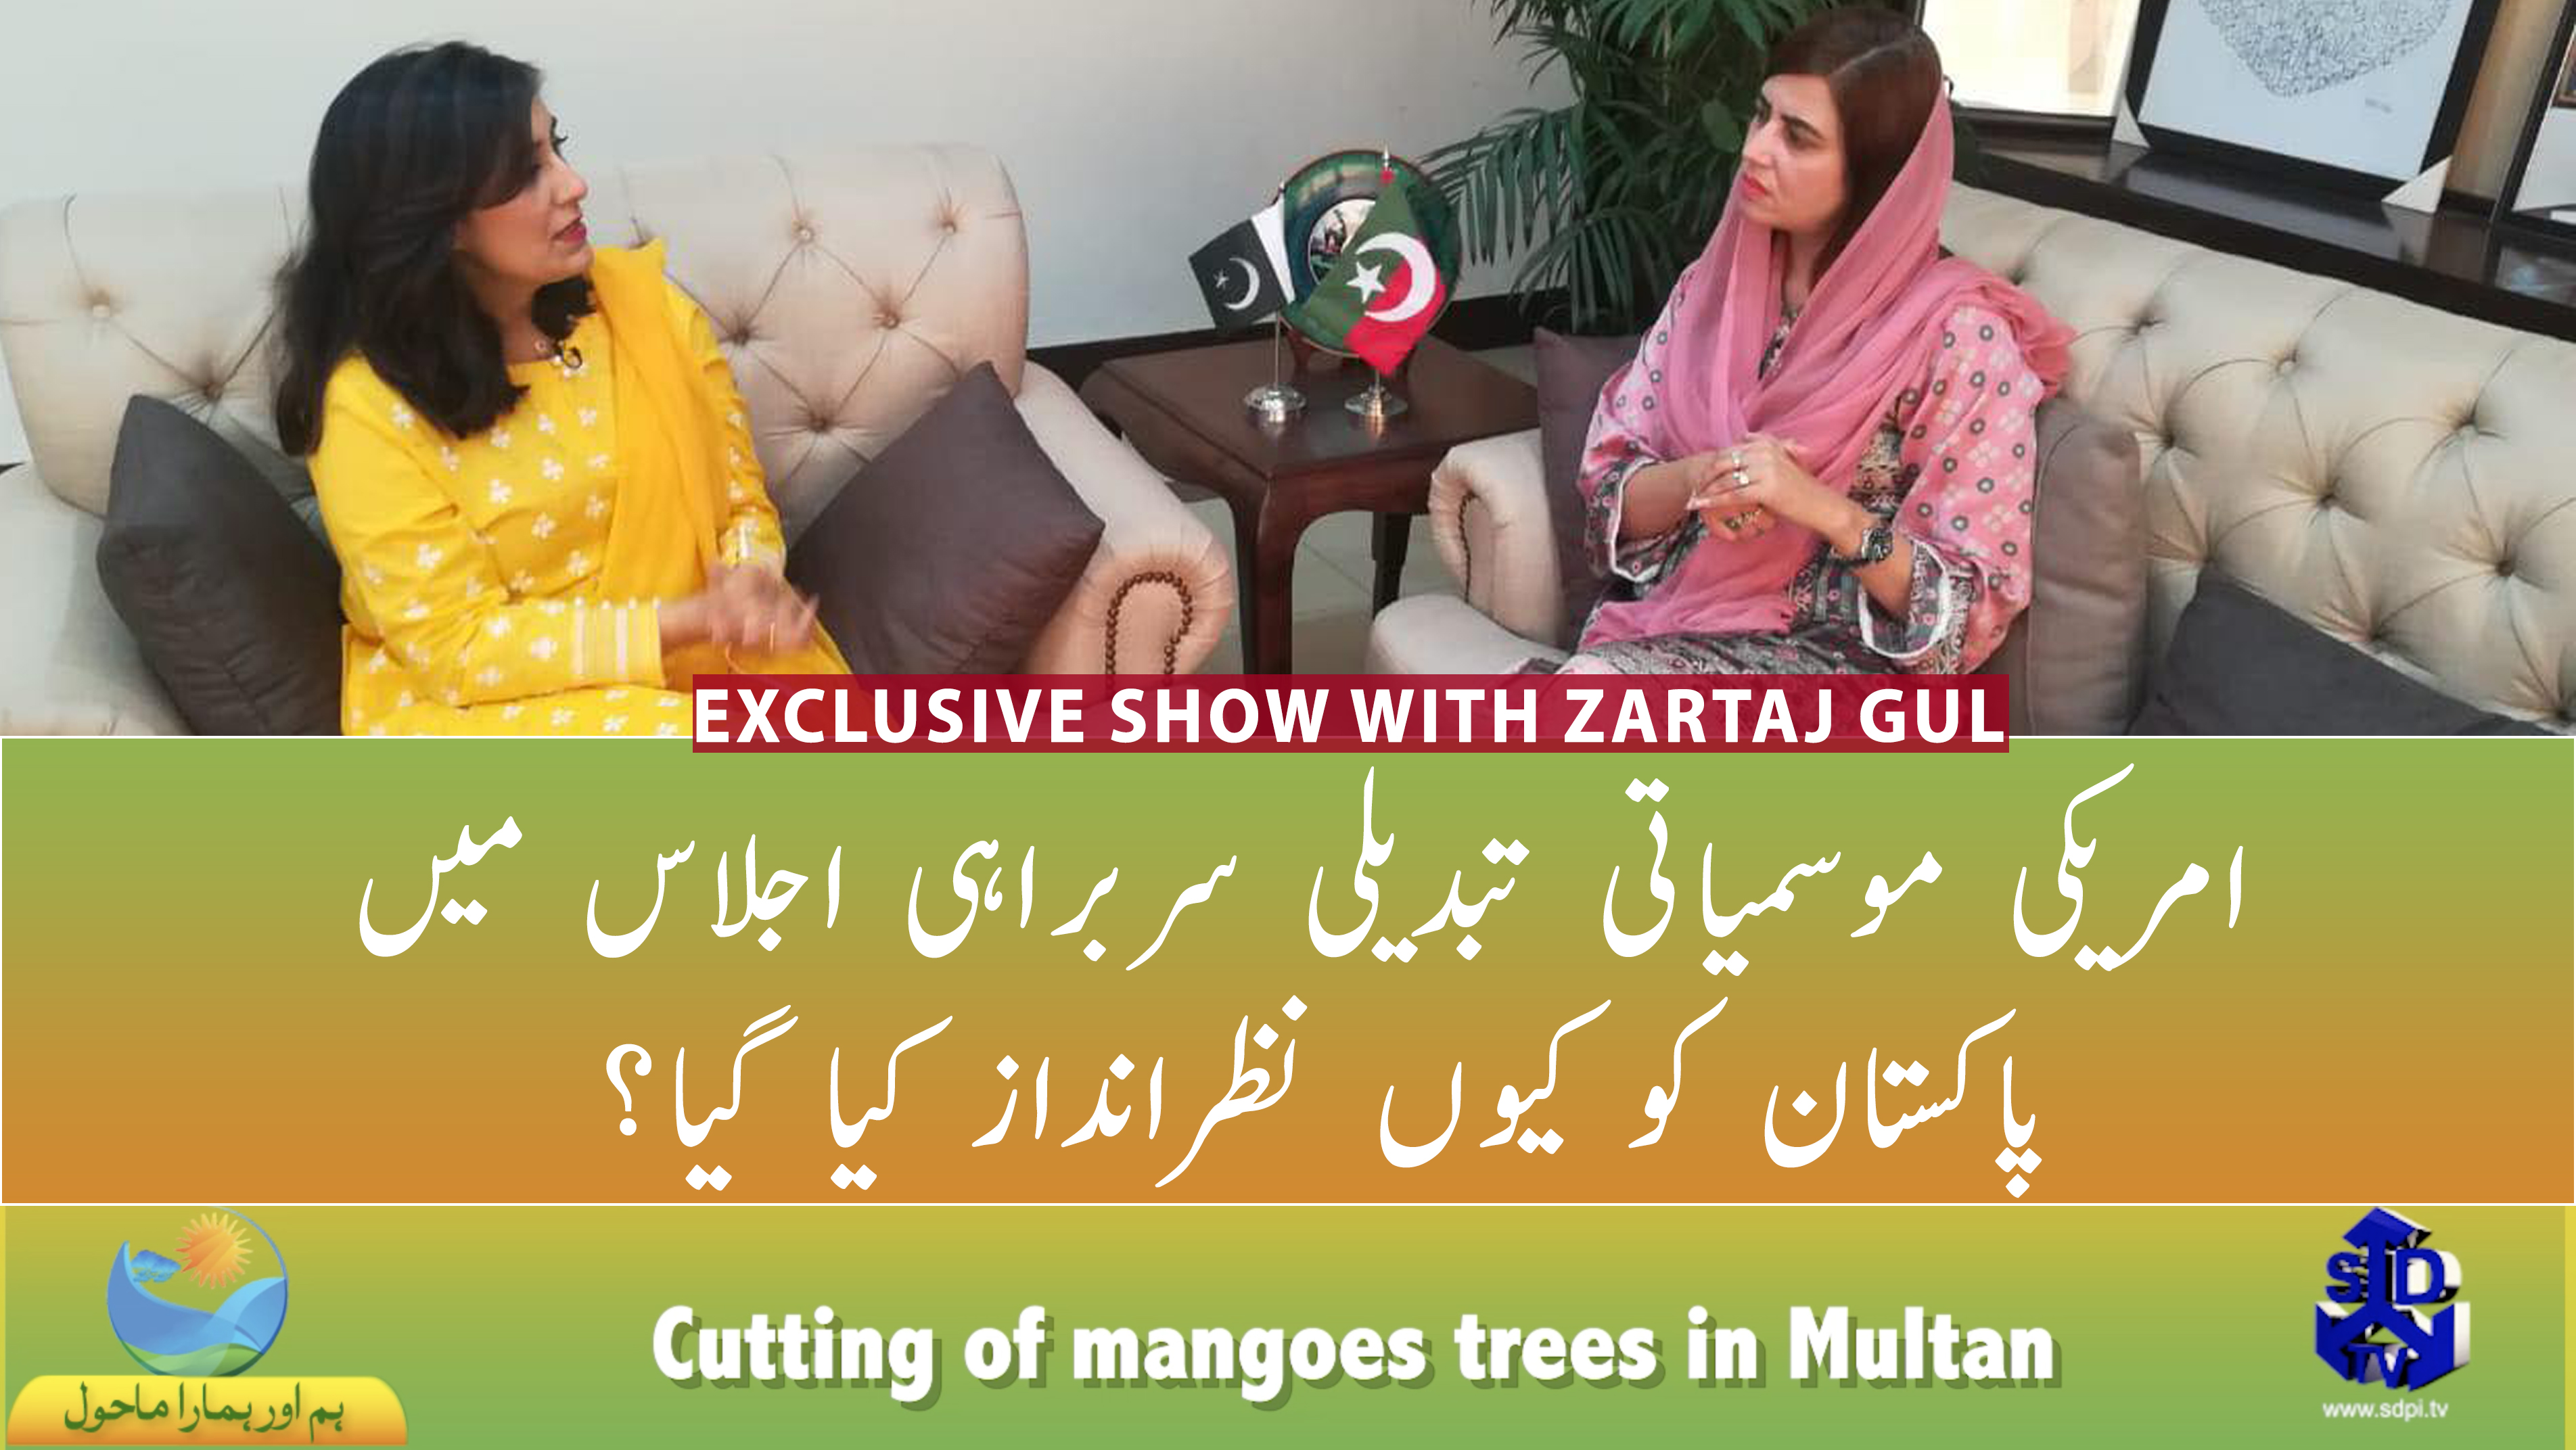 Exclusive interview with Zartaj Gul Wazir